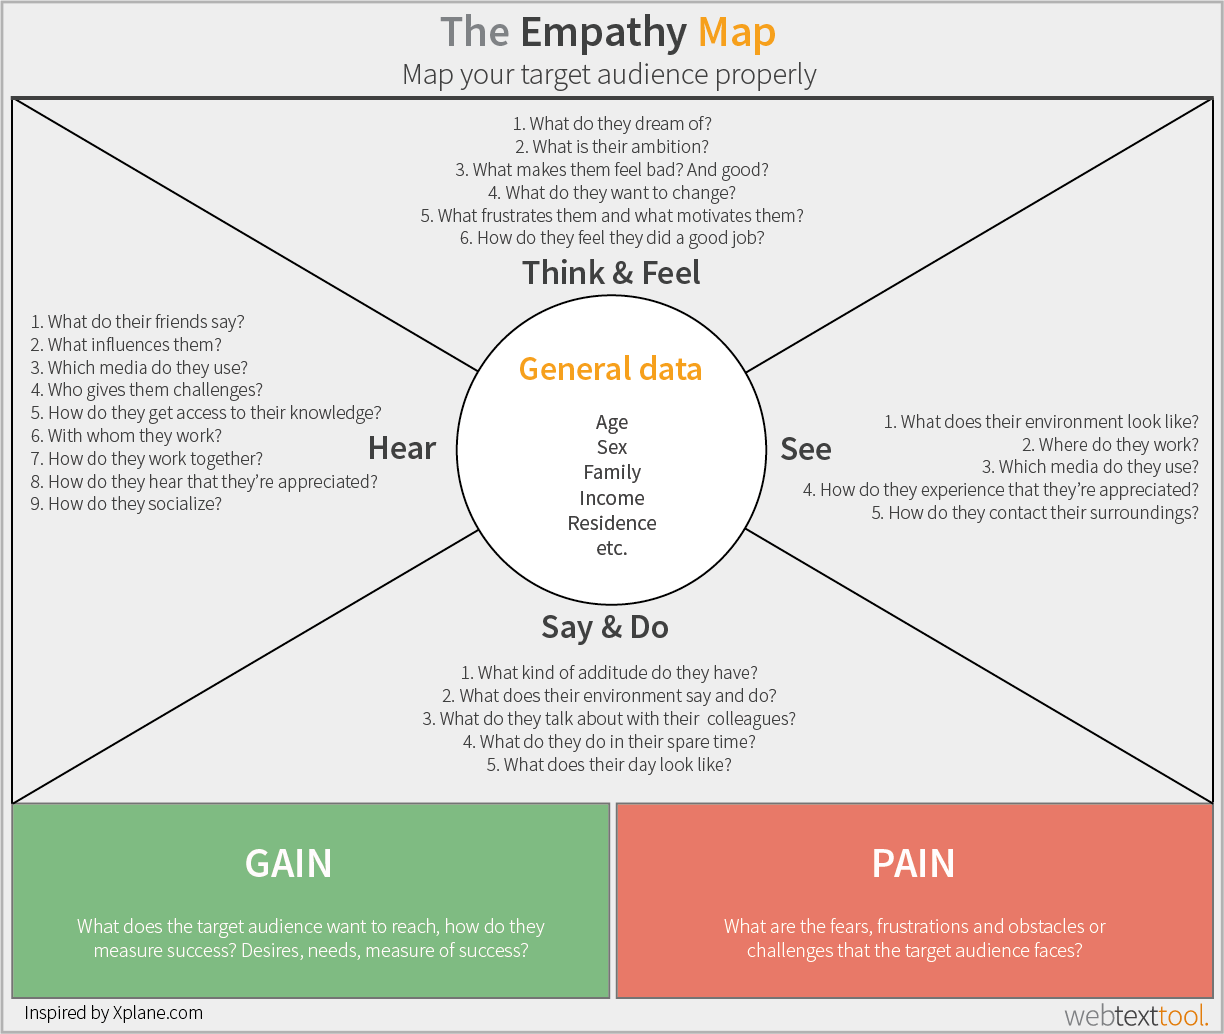 Yoni hillen author at webtexttool highly effective content for the empathy map shows you how to map your target audiences behavior and how to influence their way of thinking this map treats 6 different aspects of your ccuart Images